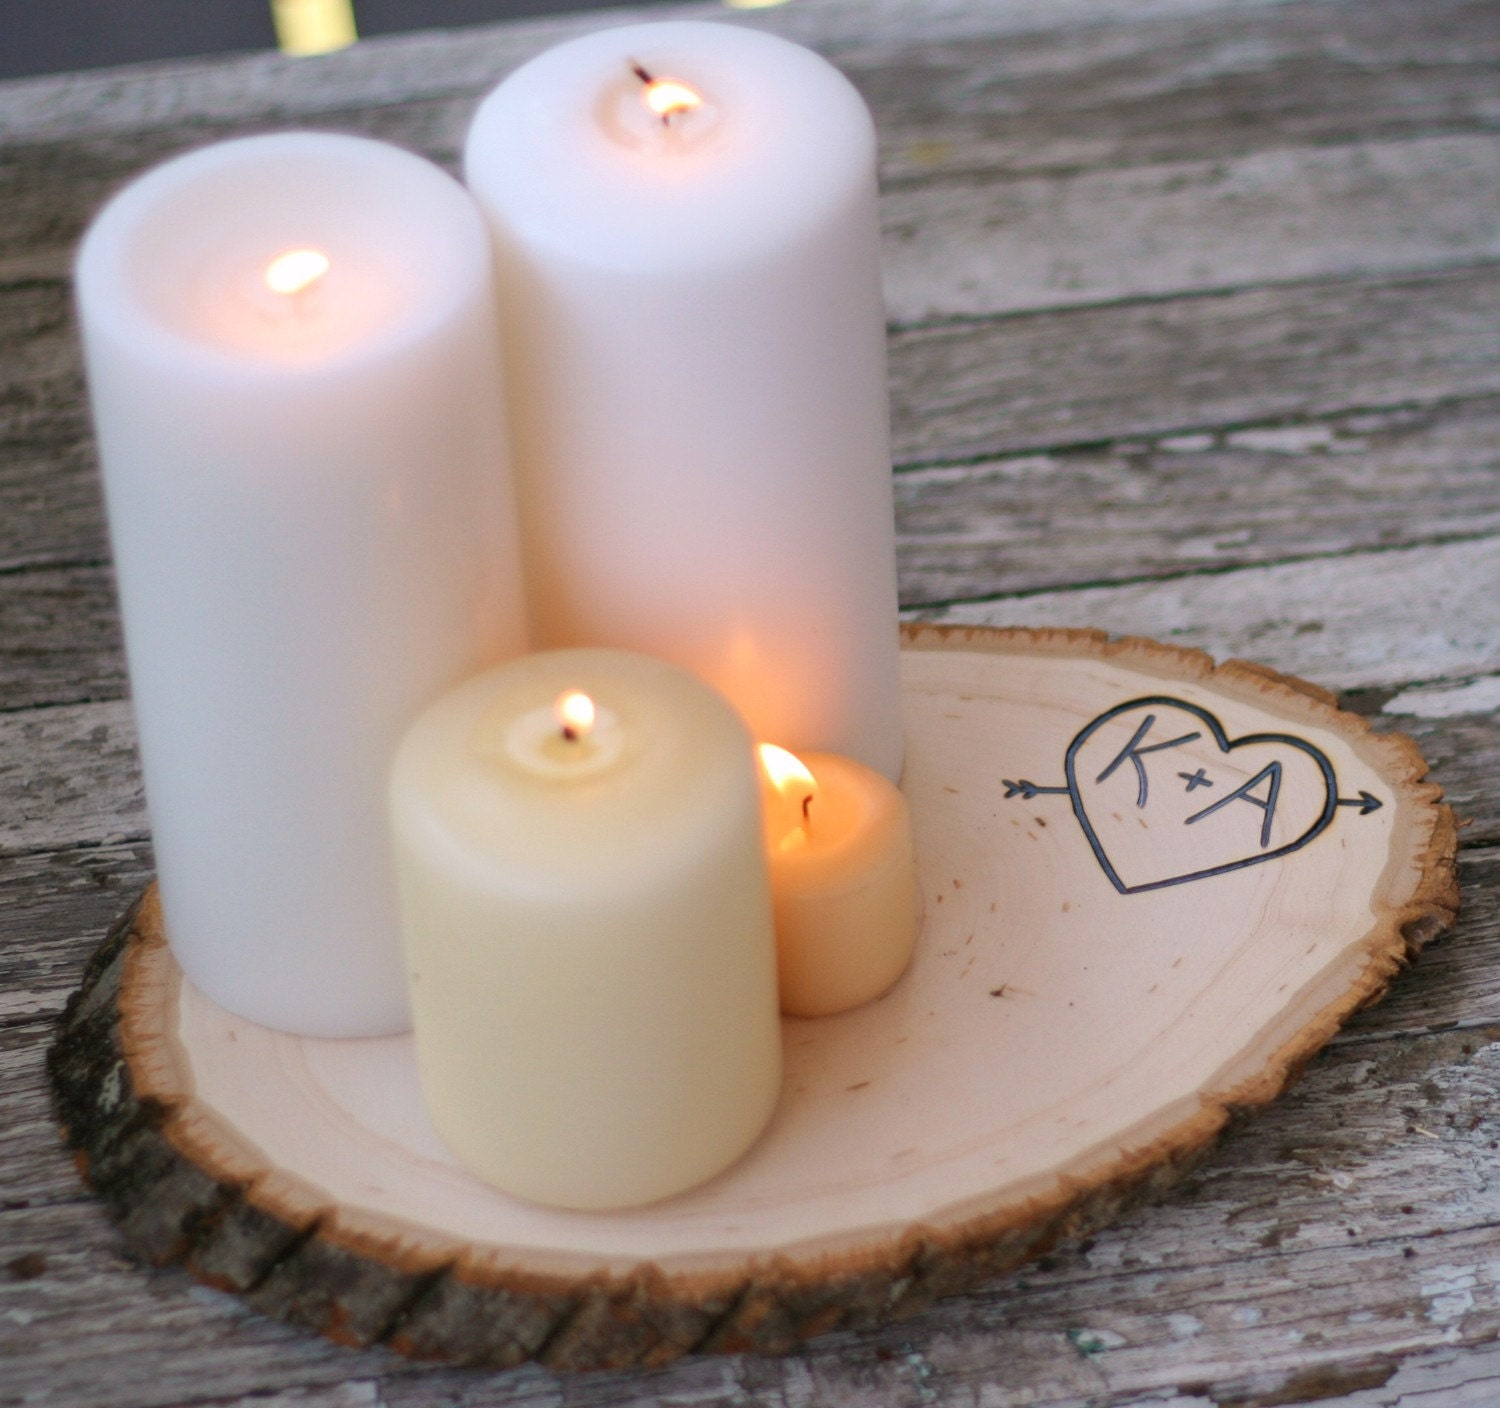 LARGE set of 12 Personalized Custom Engraved Heart and Arrow Wood Tree Slice Wedding Centerpiece Candle Flower Arrangement Stand Woodland Rustic Outdoor Fairytale Barn Farm Summer Spring Garden Wedding Shabby VINTAGE CHIC